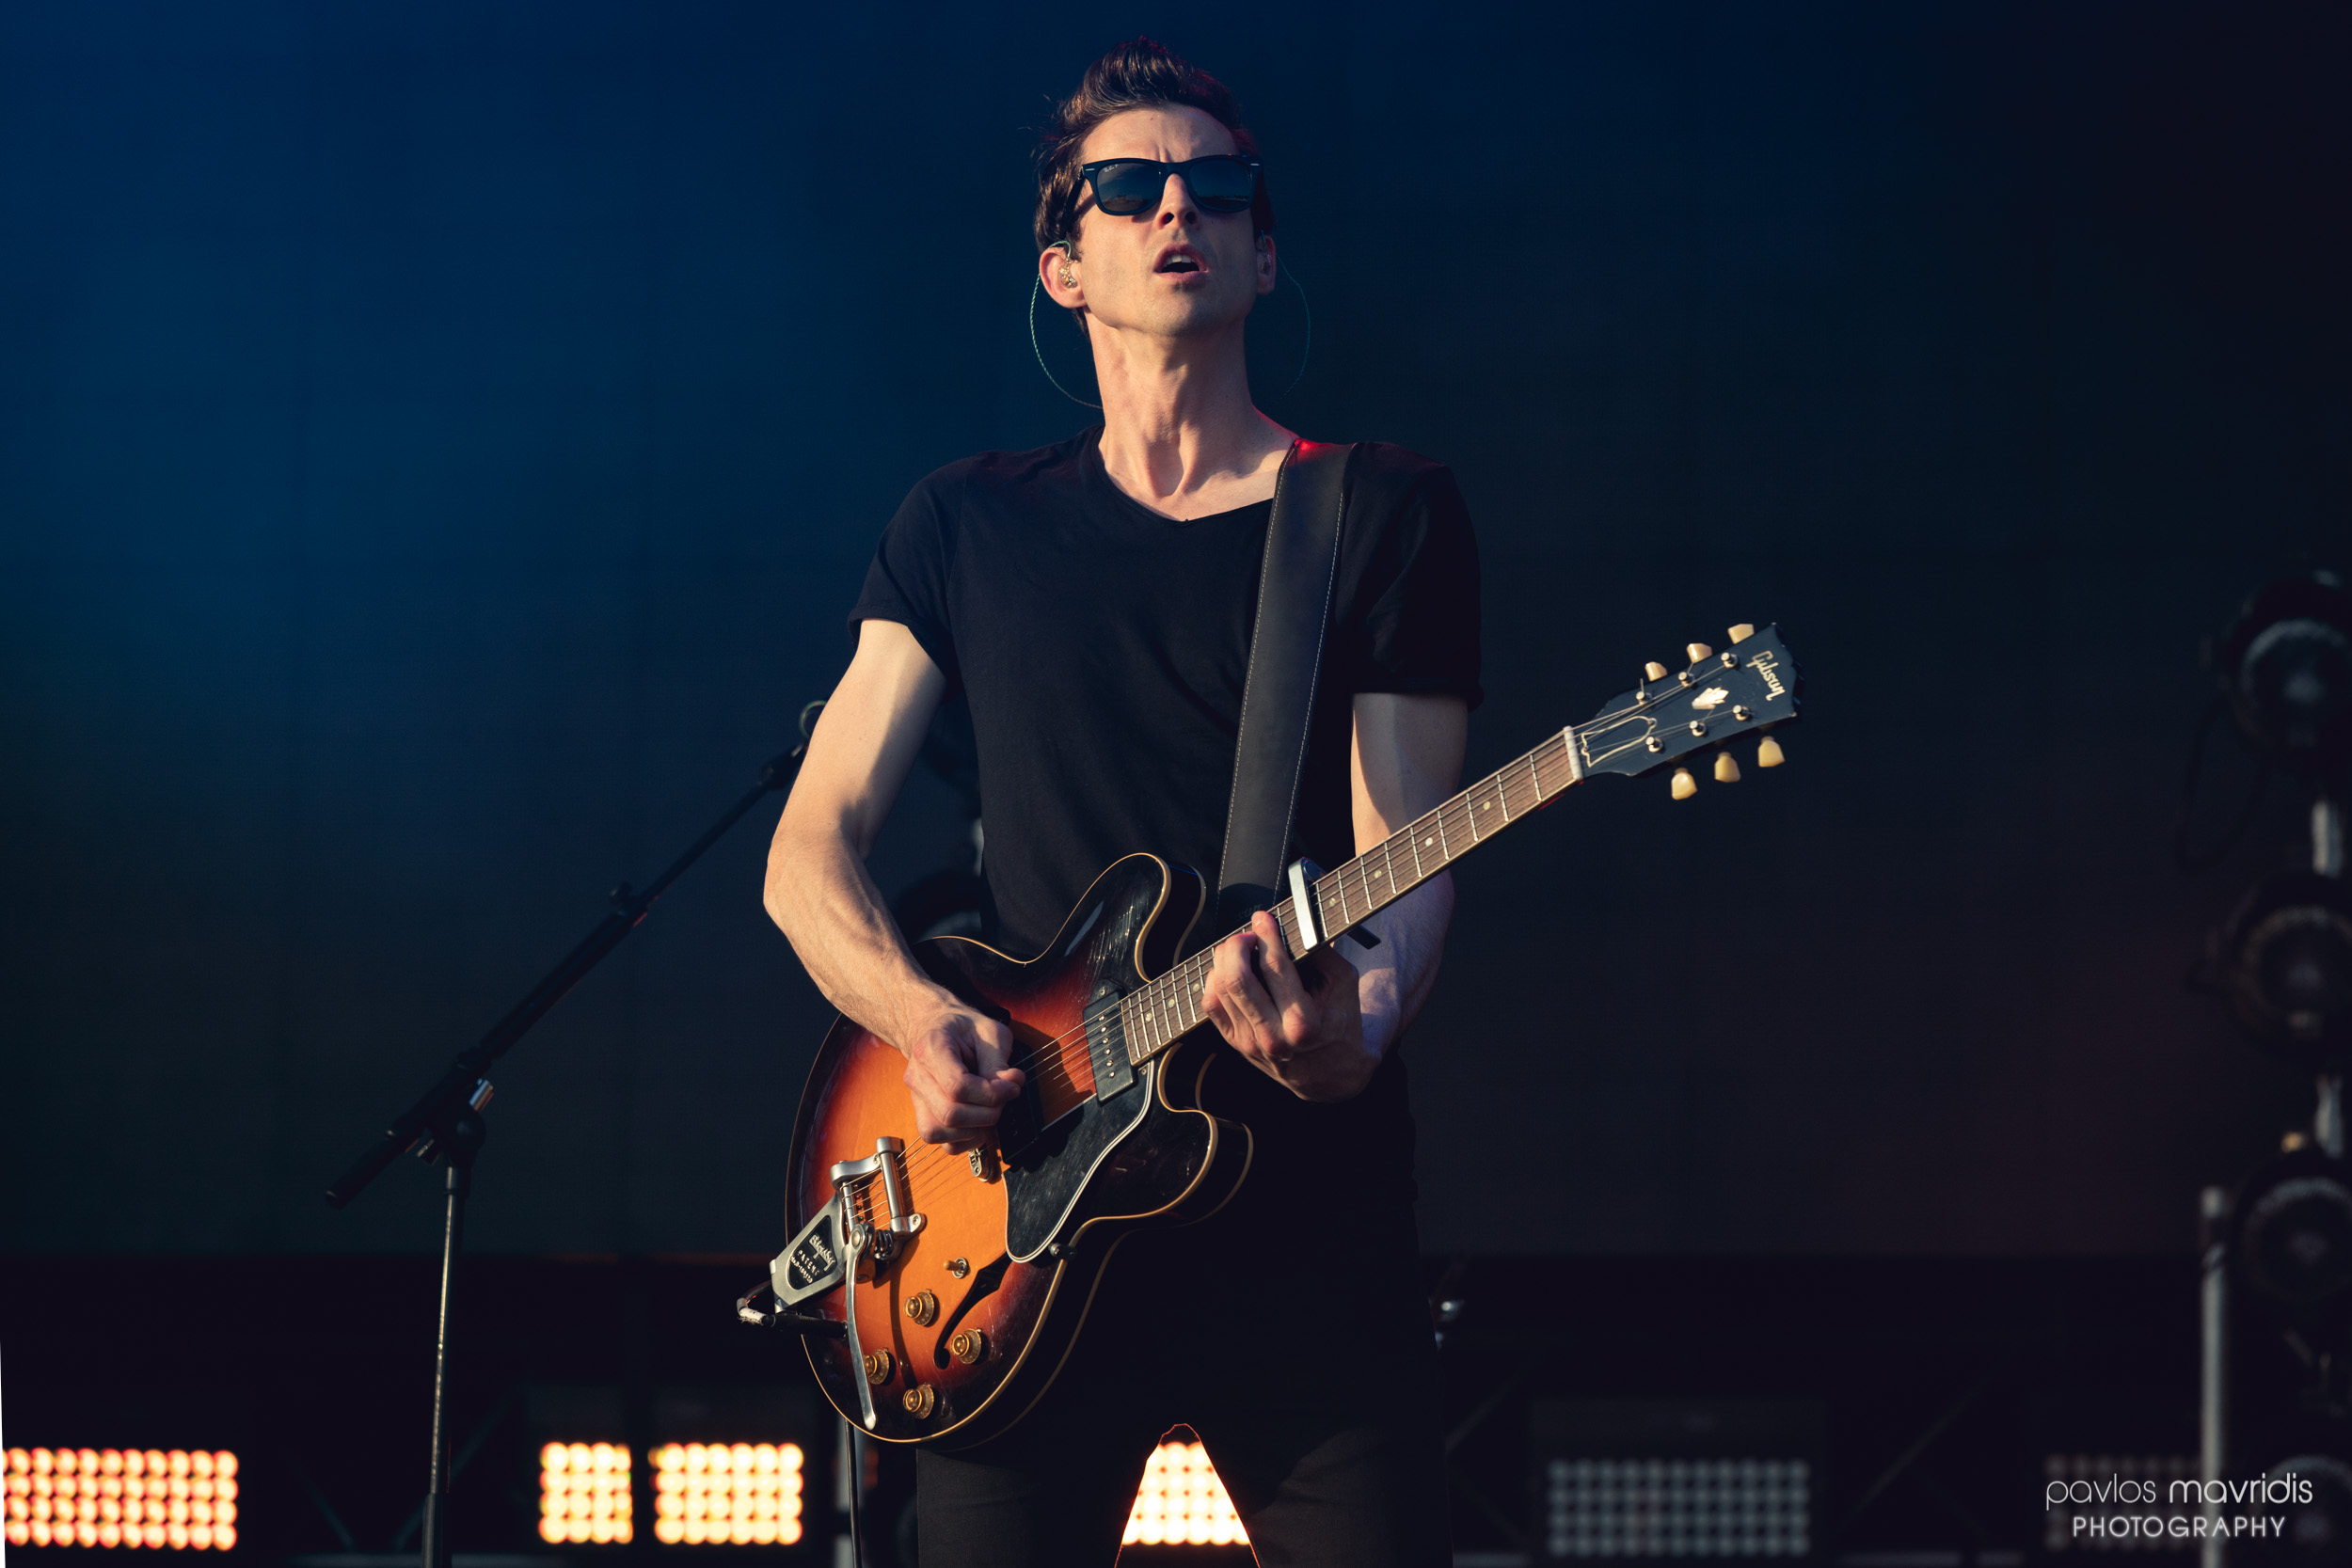 Hooverphonic_Release Athens 2019_06_hires_web.jpg